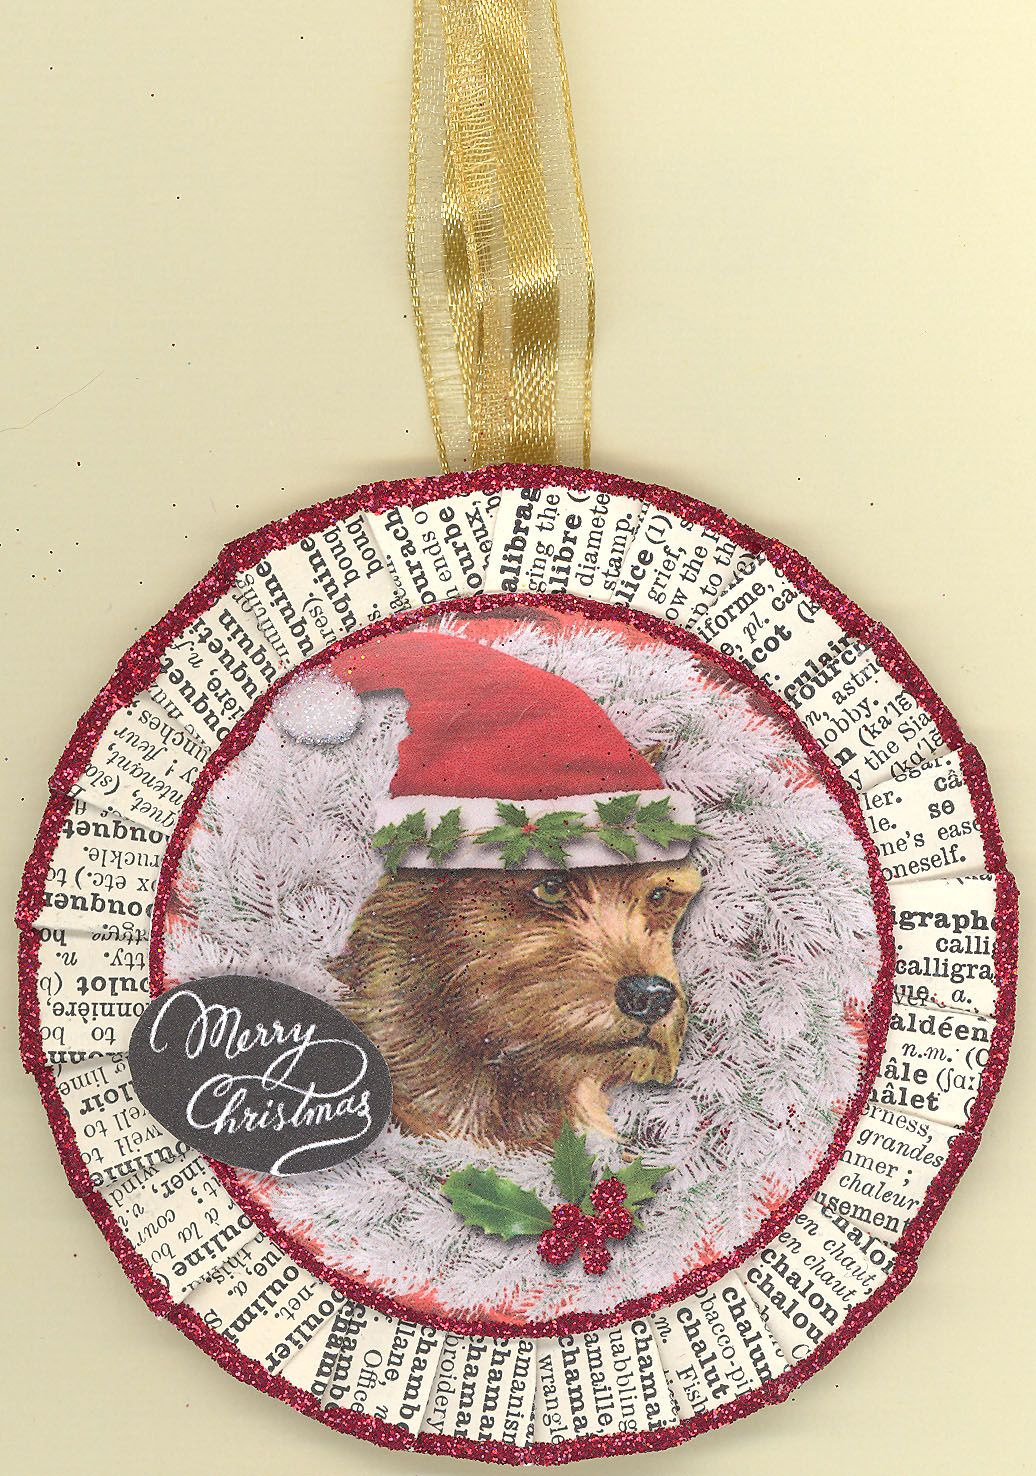 """Rat Terrier. Measures approx. 3"""" in diameter without the ribbon hanger which is about 1.5"""". The back side is a painted wooden circle that is signed and dated by the artist. The rosette is folded by hand and is made from papers from a 1932 French Dictionary, edges are glittered with ArtGlitter. Hang on a wreath, package, garland, door, tree or light. A perfect gift for you or a dog lover in your life. Convo me if you want different dog breed, it may be possible to custom order one from me."""